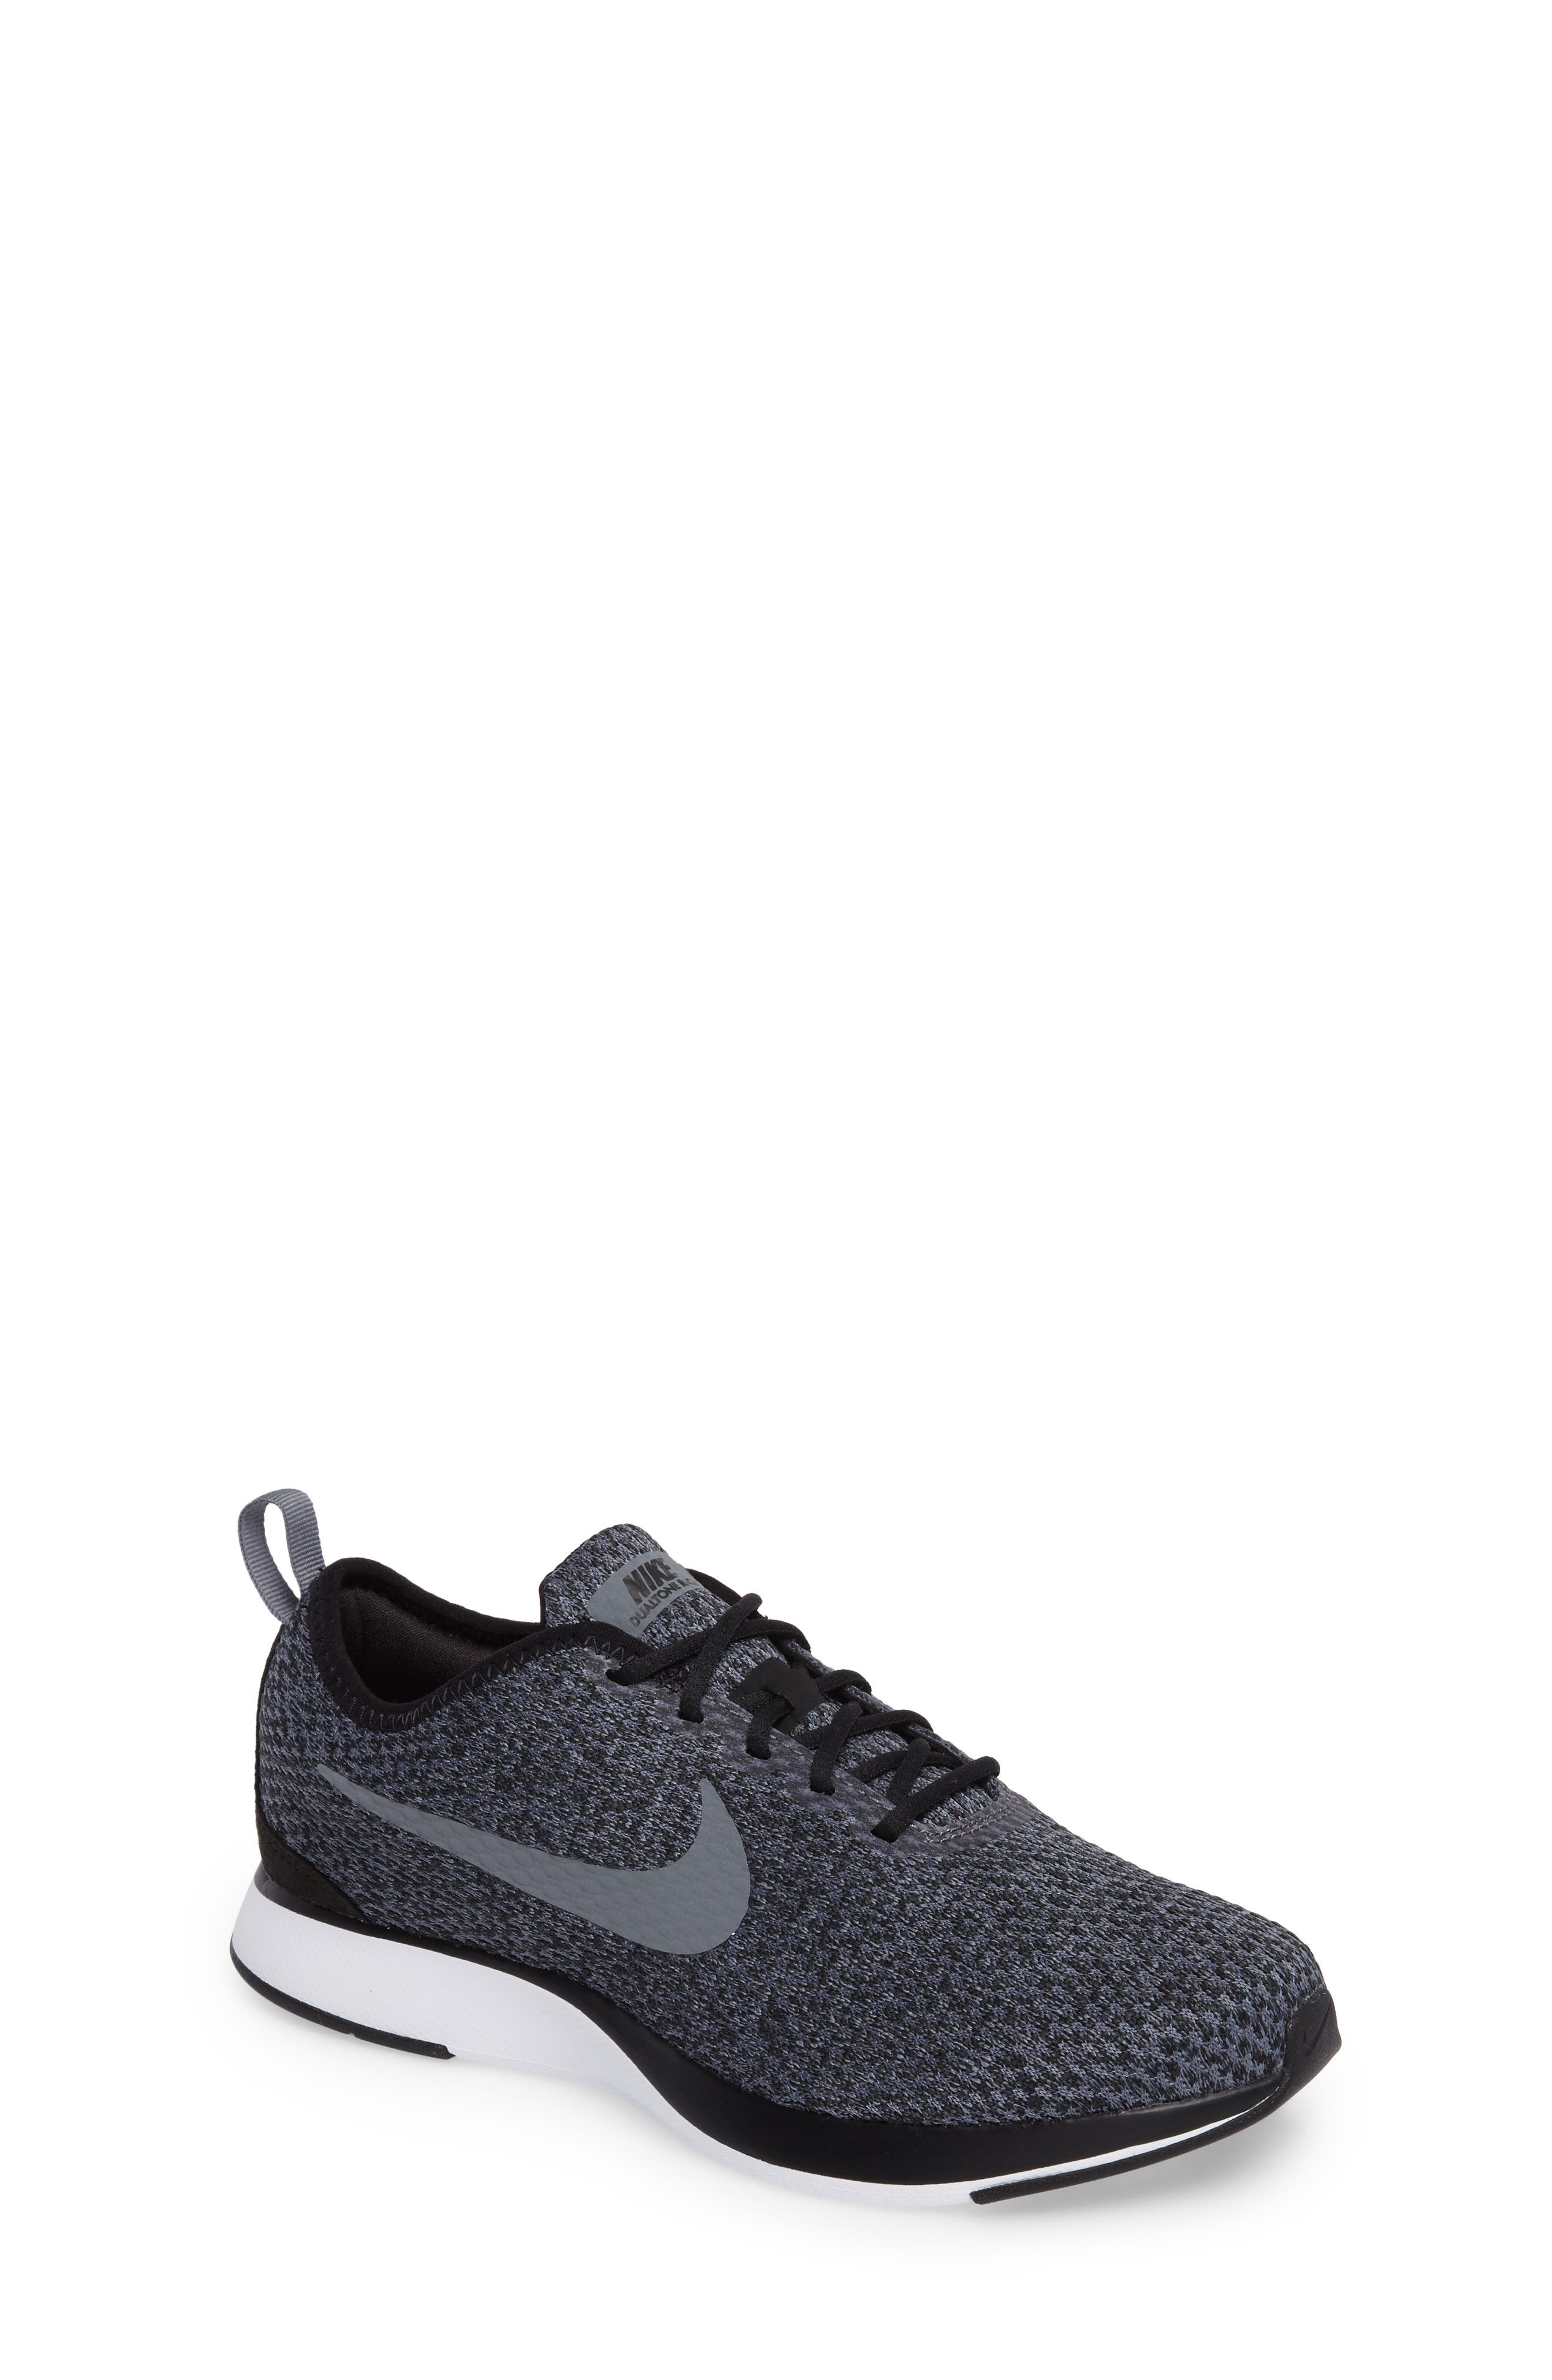 Nike Dualtone Racer SE Sneaker (Toddler, Little Kid & Big Kid)